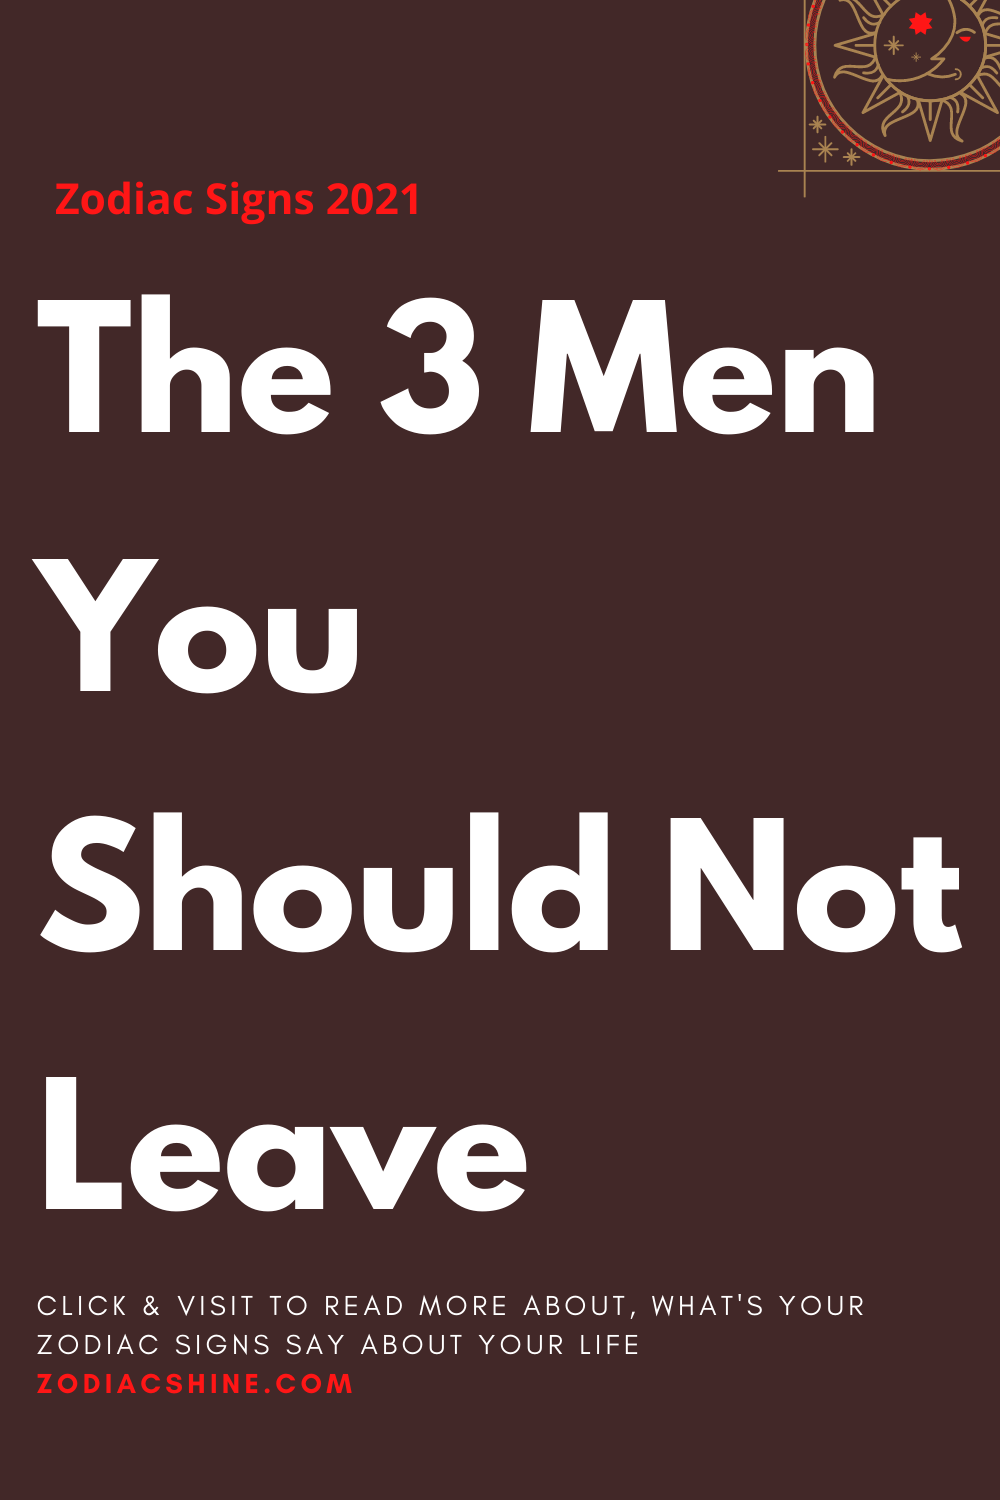 The 3 Men You Should Not Leave